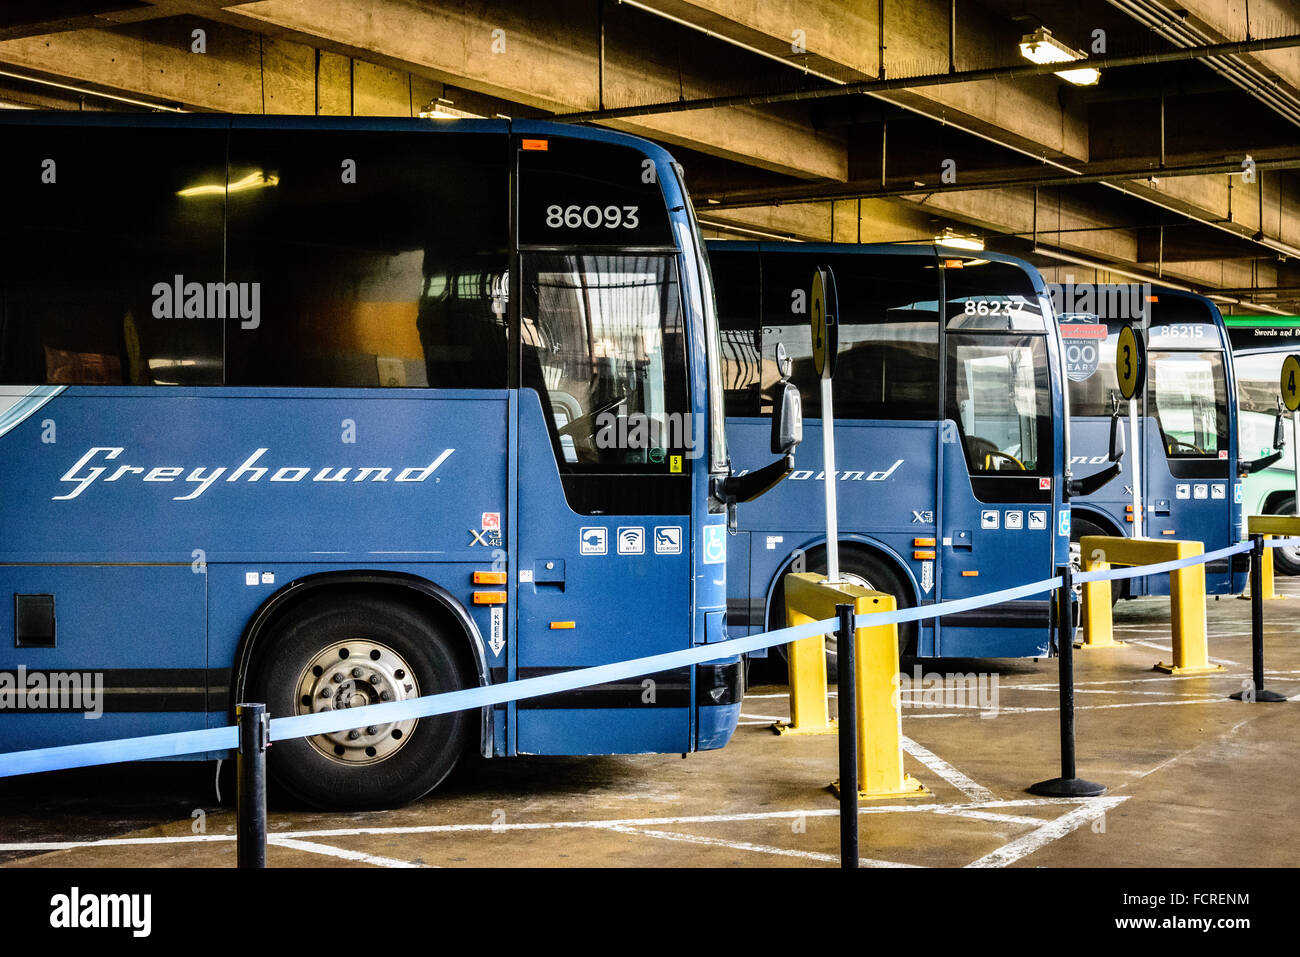 greyhound buses in union station bus terminal washington. Black Bedroom Furniture Sets. Home Design Ideas